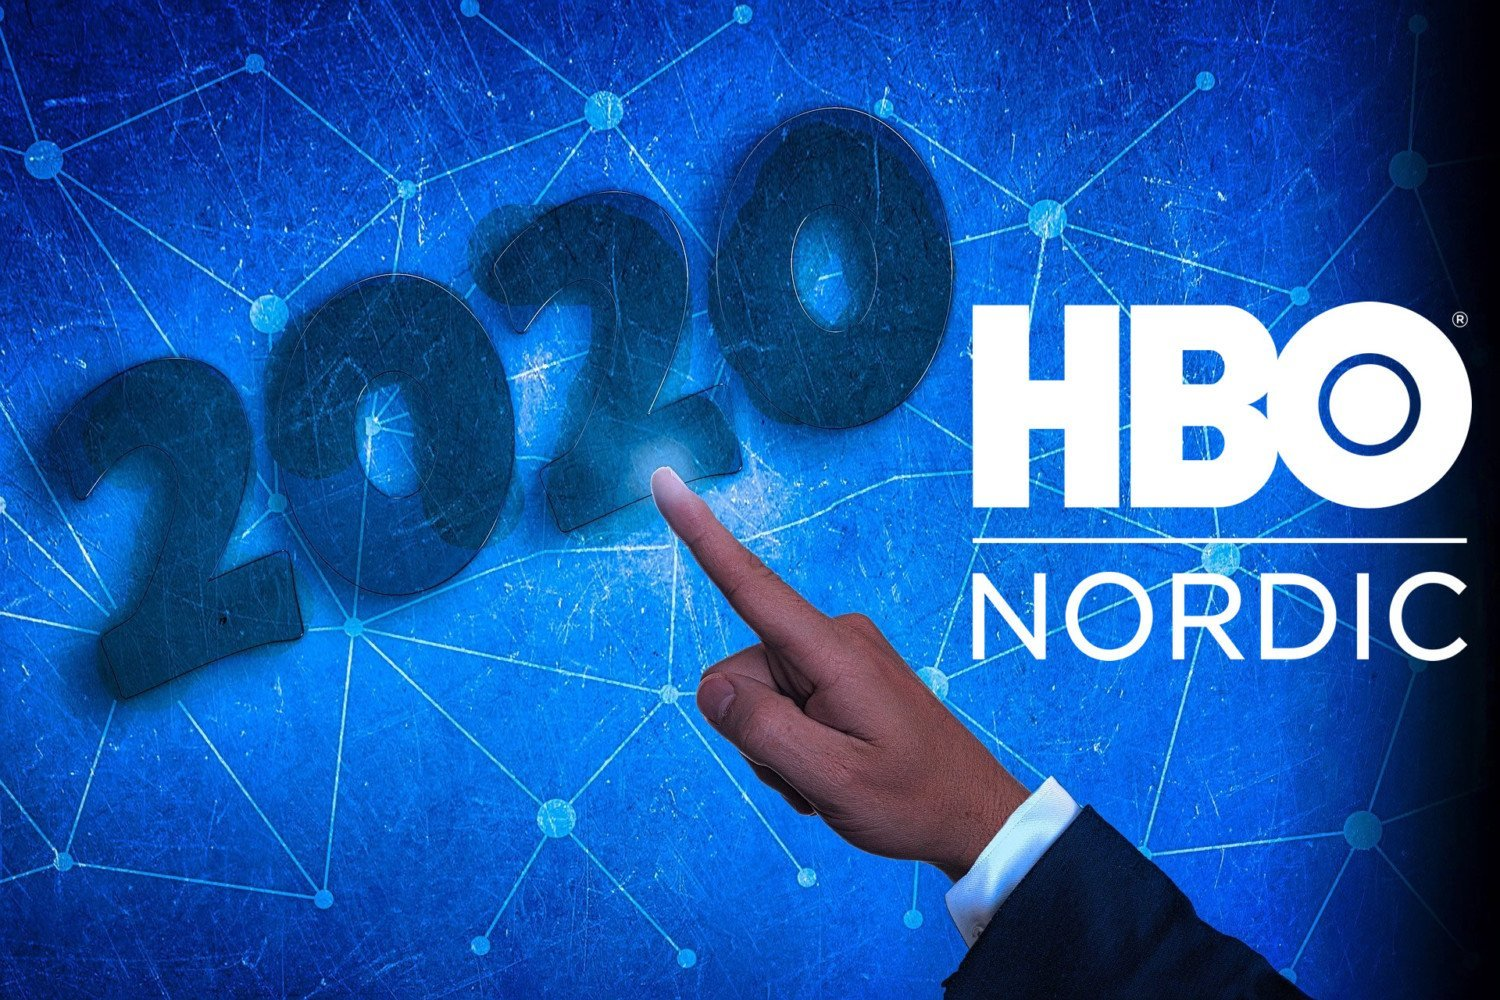 HBO Nordic 2020